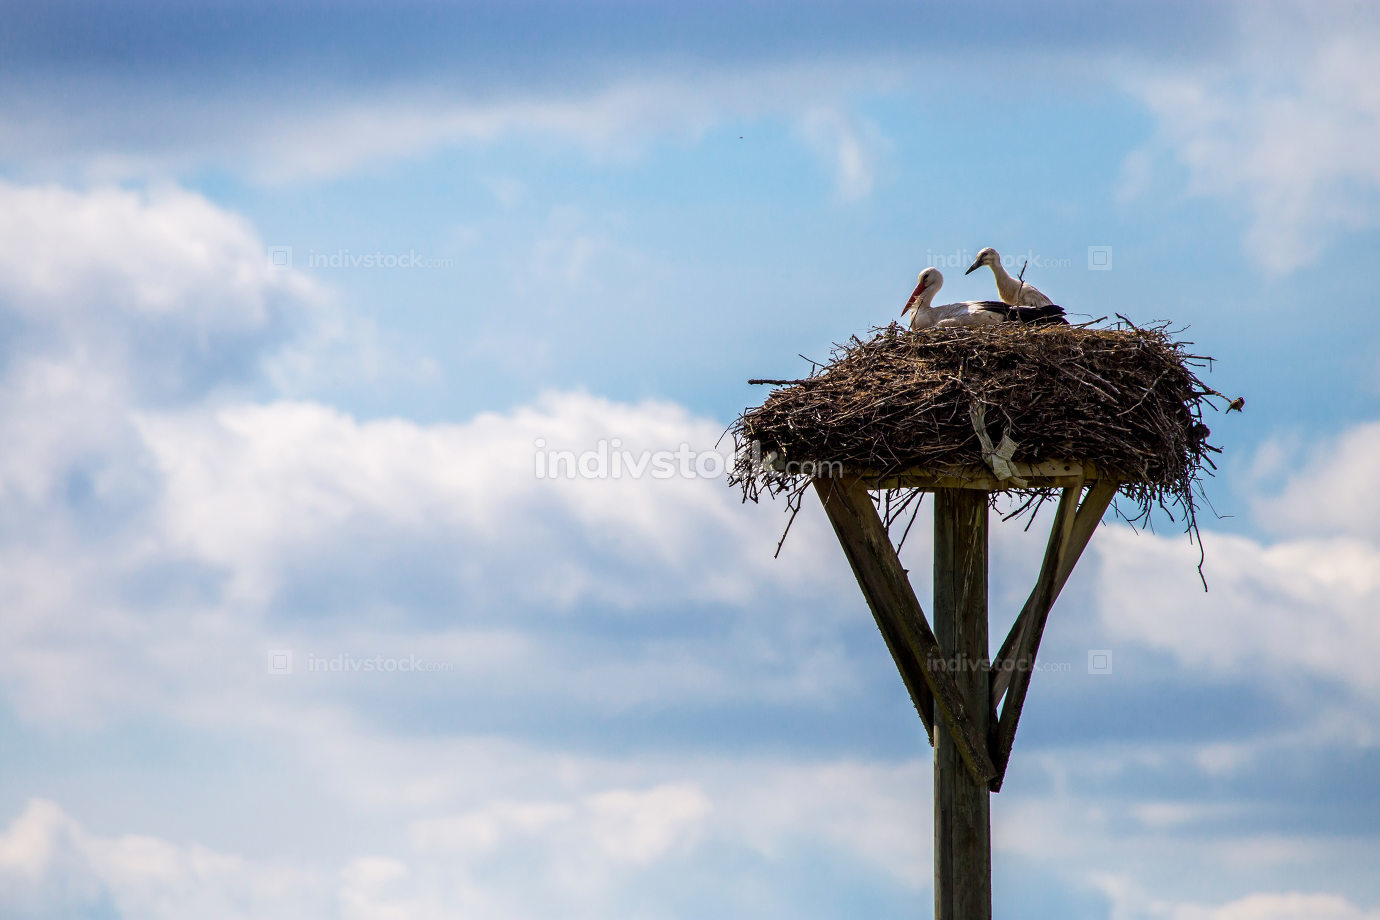 Storks baby in nest on blue sky background.